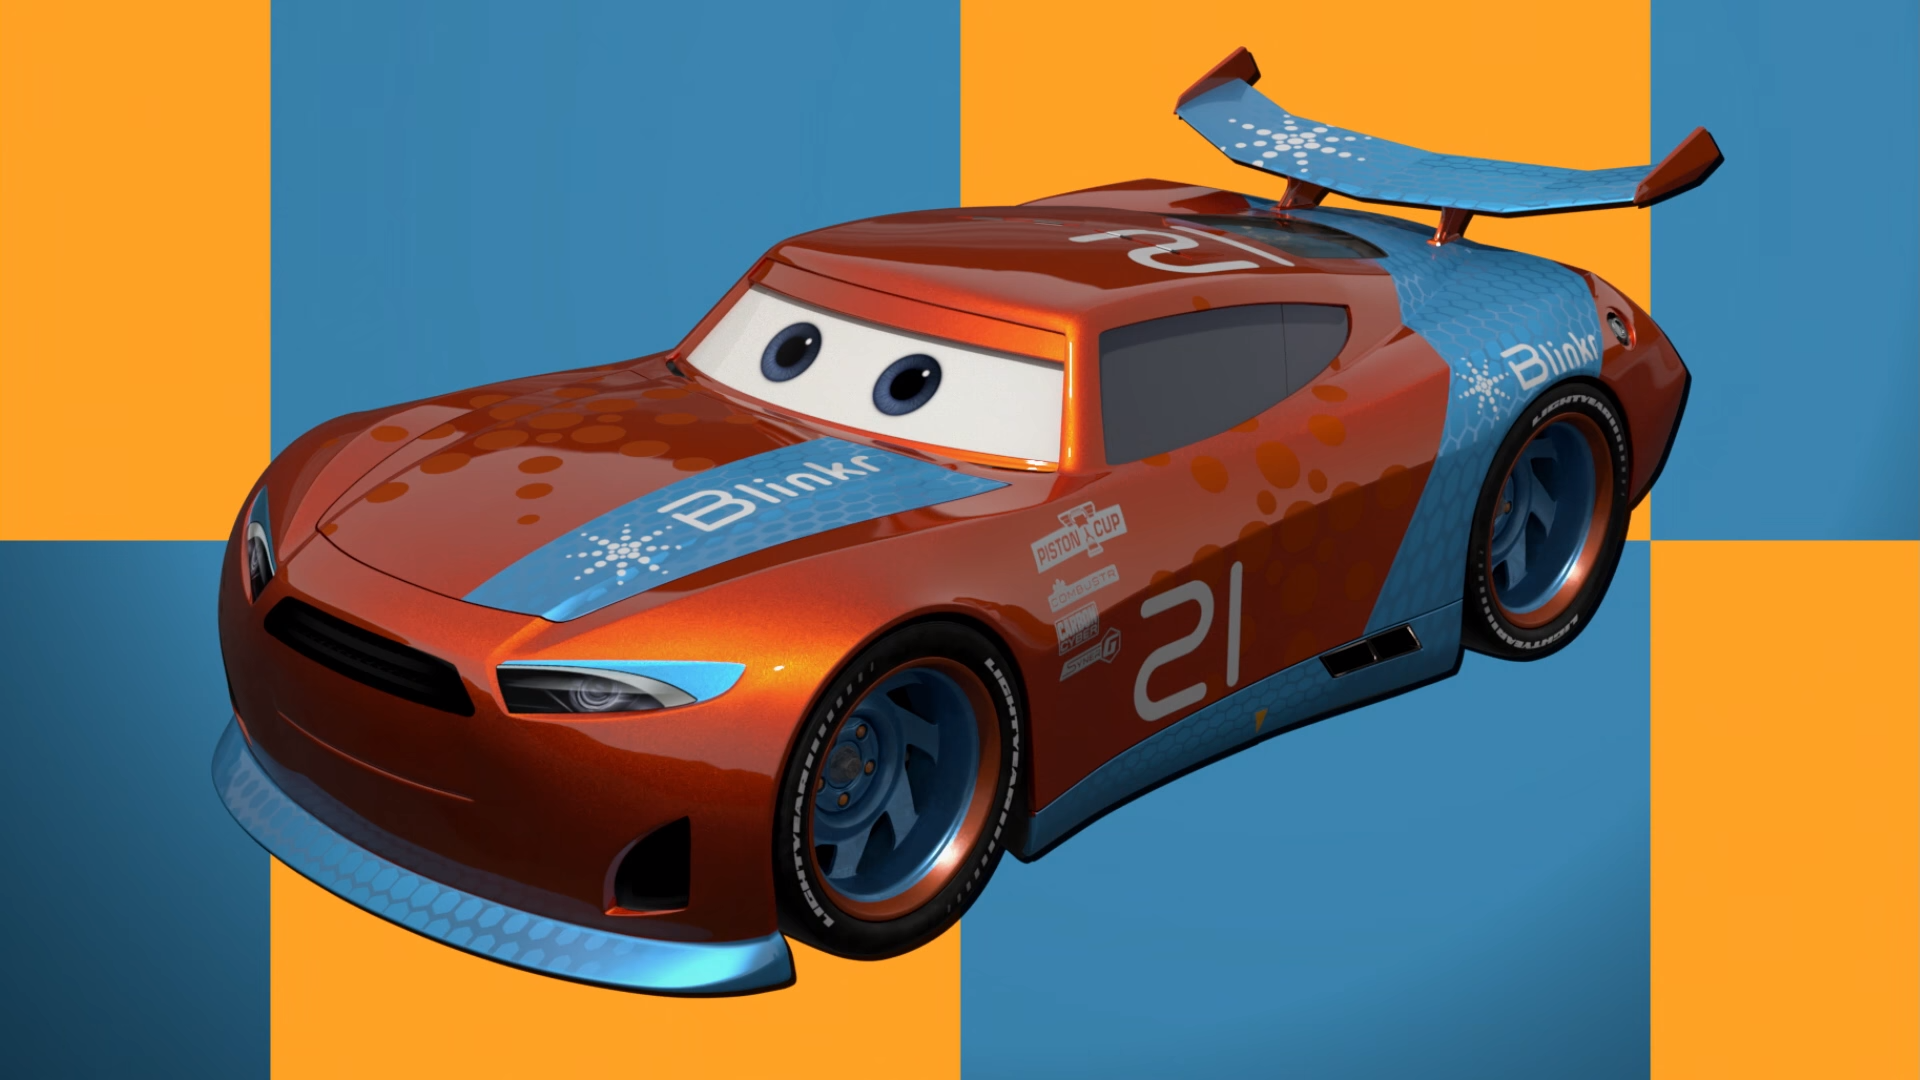 Other Next Gen Racers In Cars